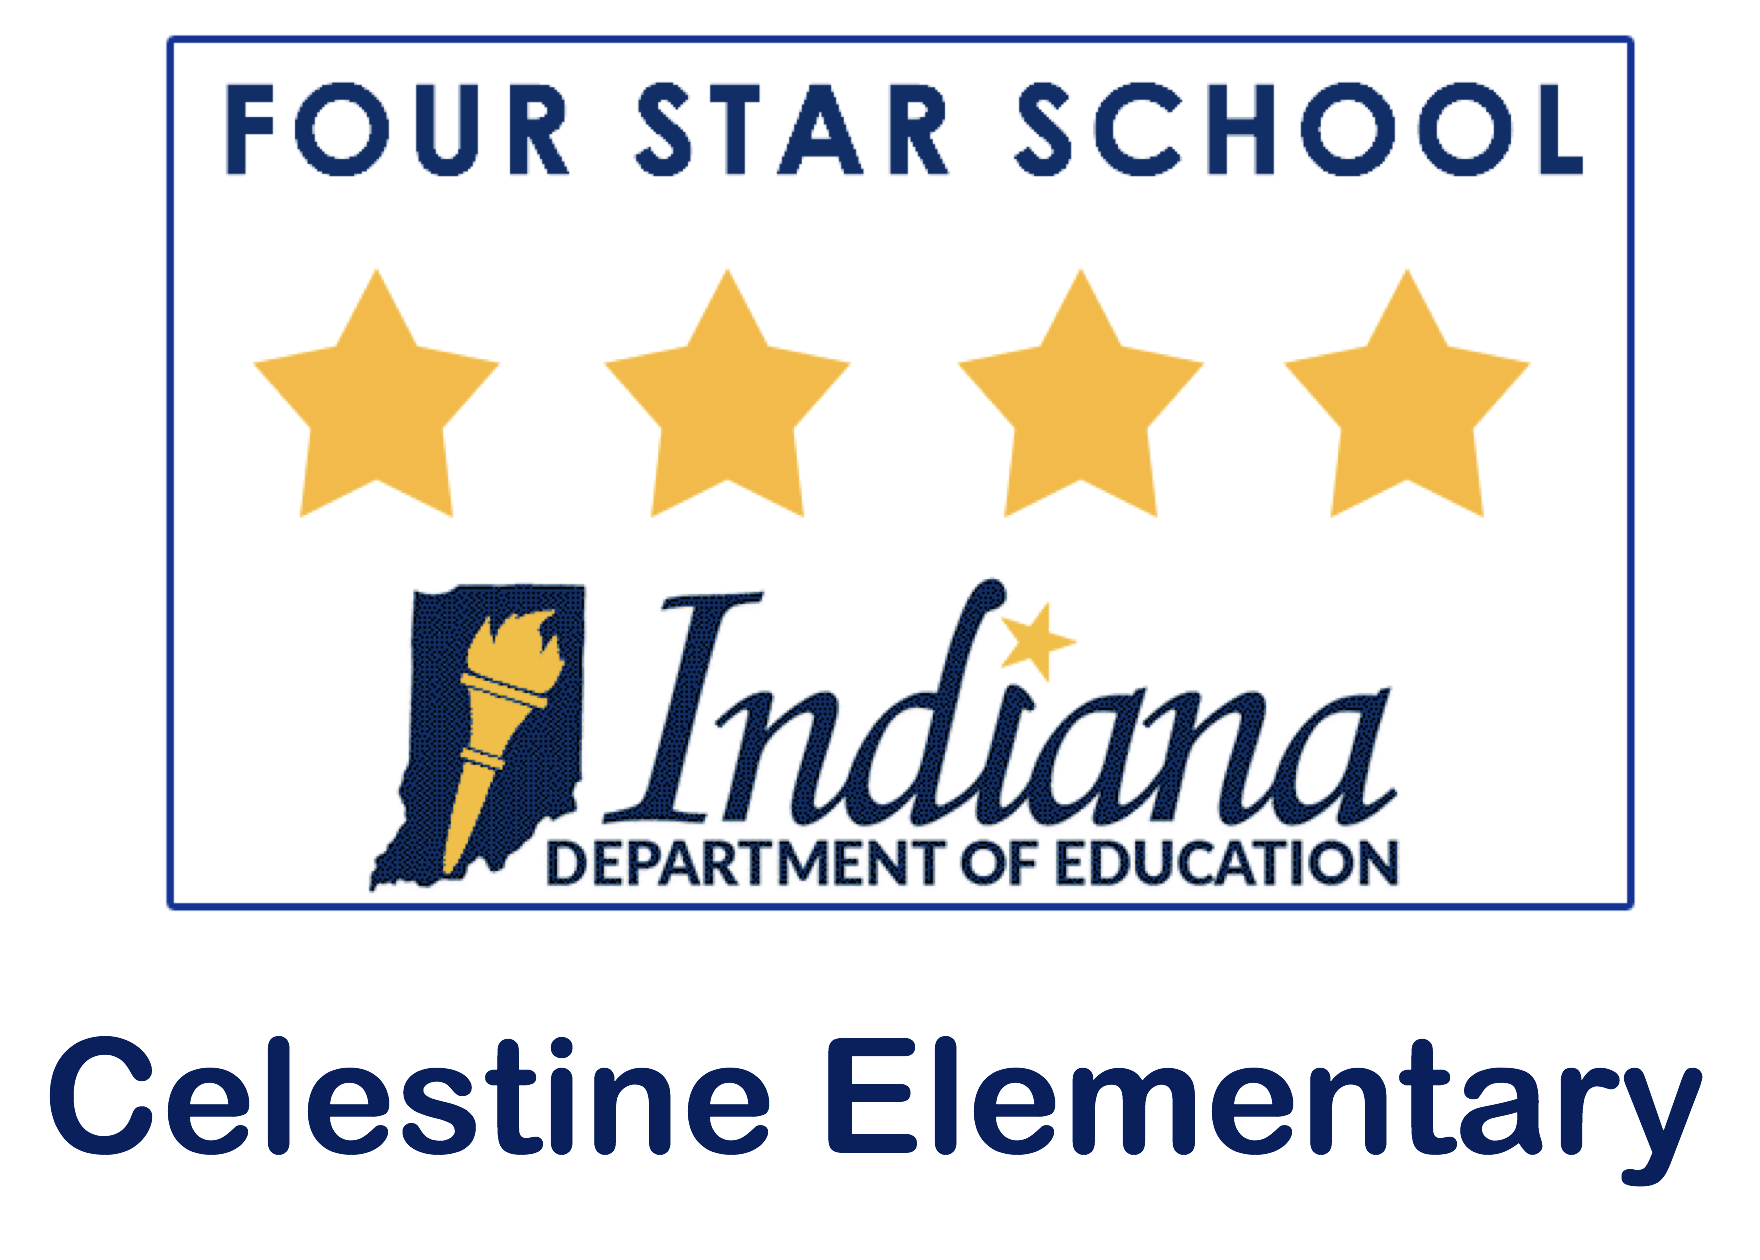 Four Star School - Celestine